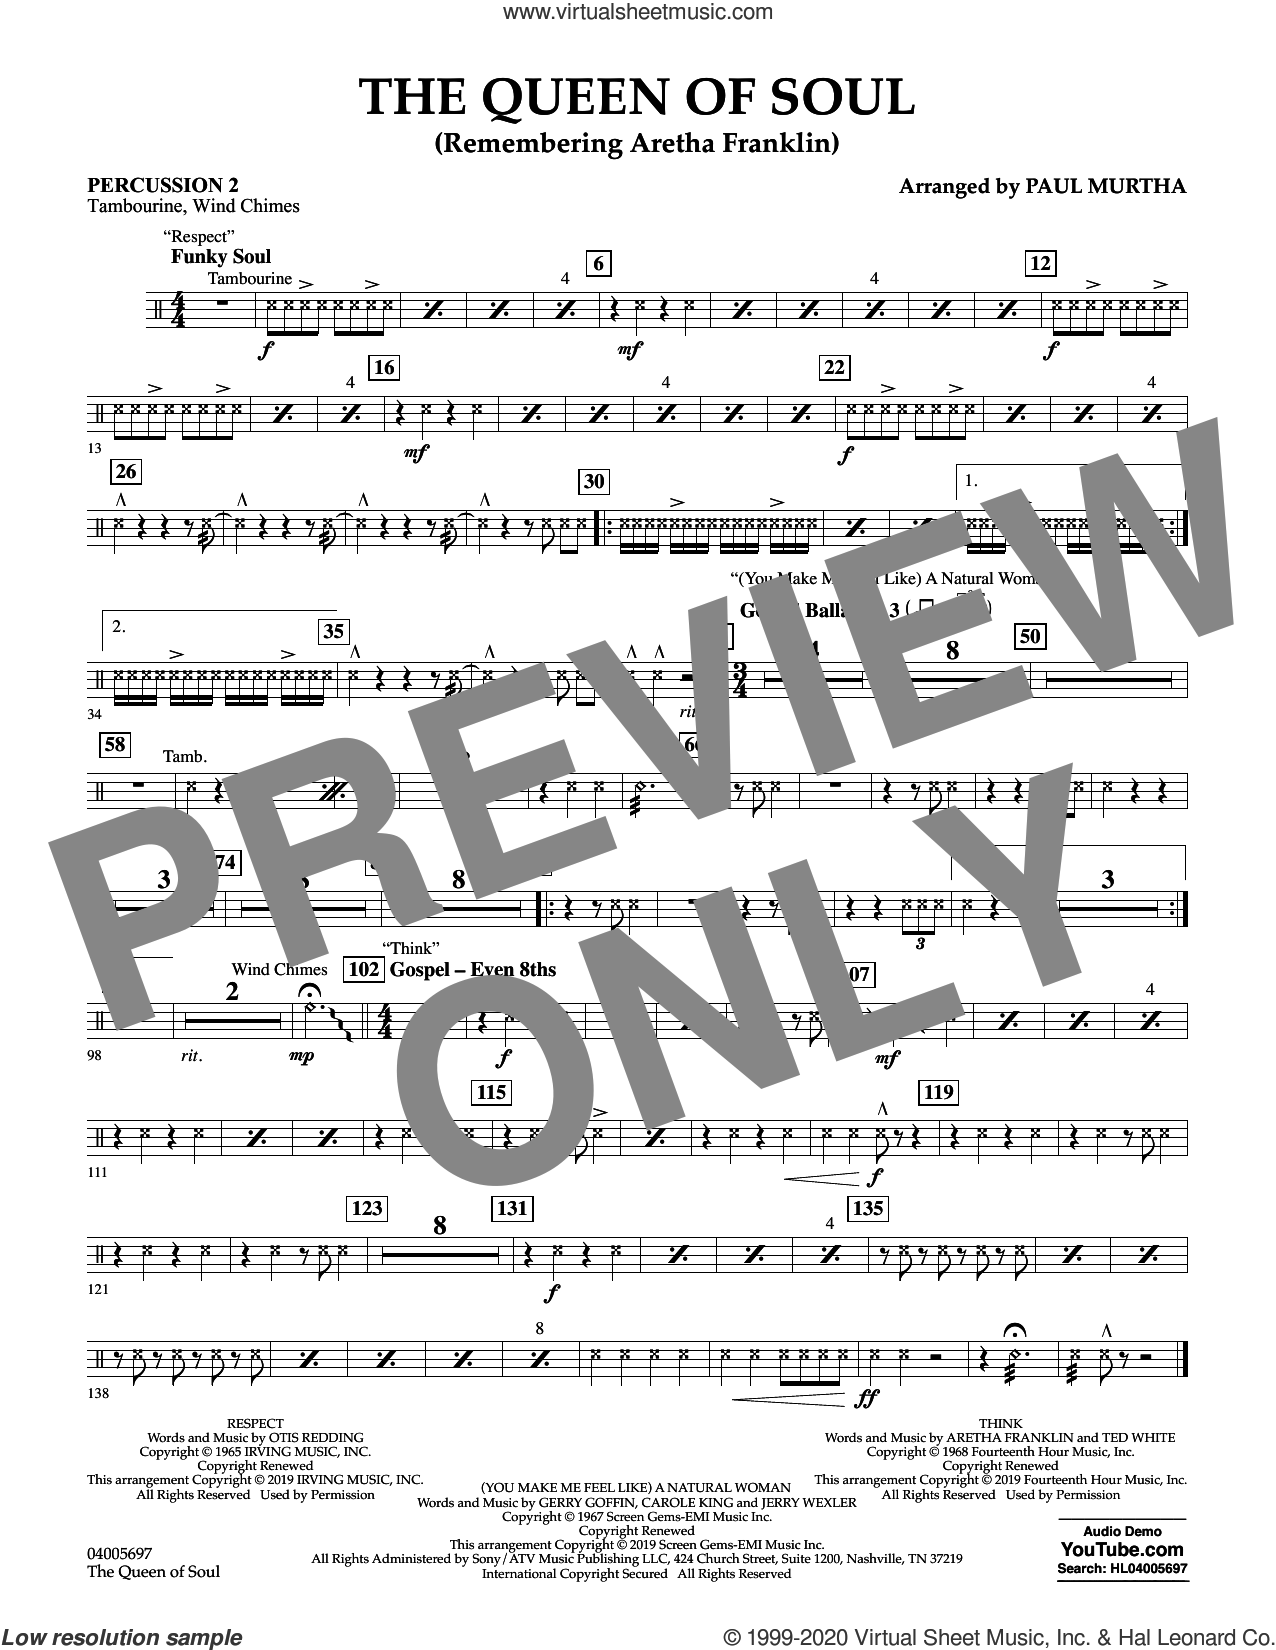 The Queen Of Soul (arr. Paul Murtha)- Conductor Score (Full Score) sheet music for concert band (percussion 2) by Aretha Franklin and Paul Murtha, intermediate skill level